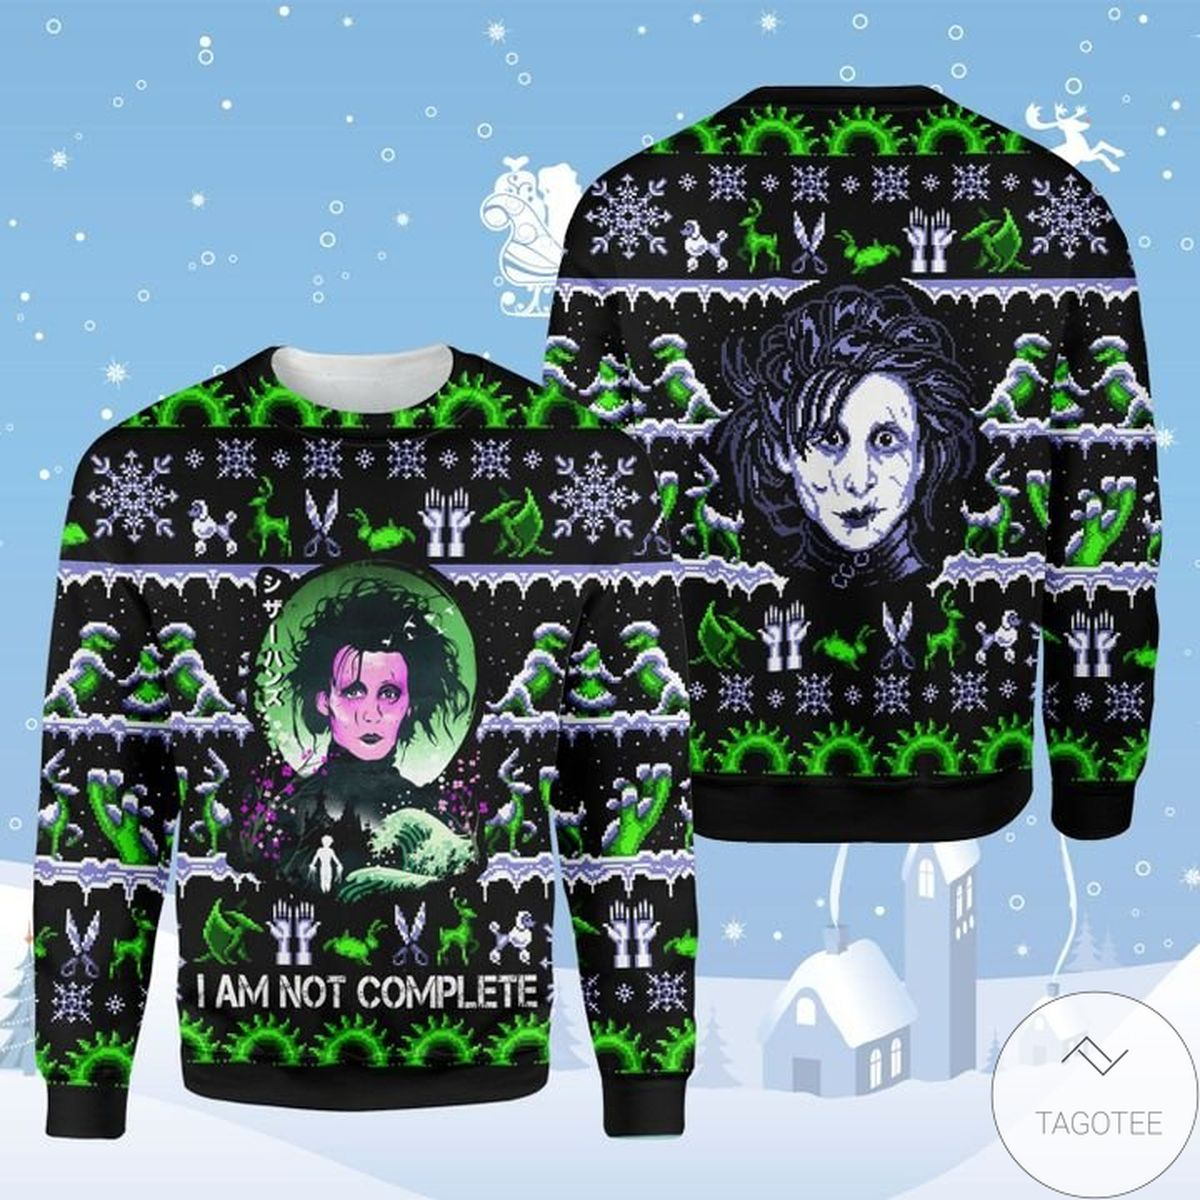 Scissors I Am Not Complete Ugly Christmas Sweater